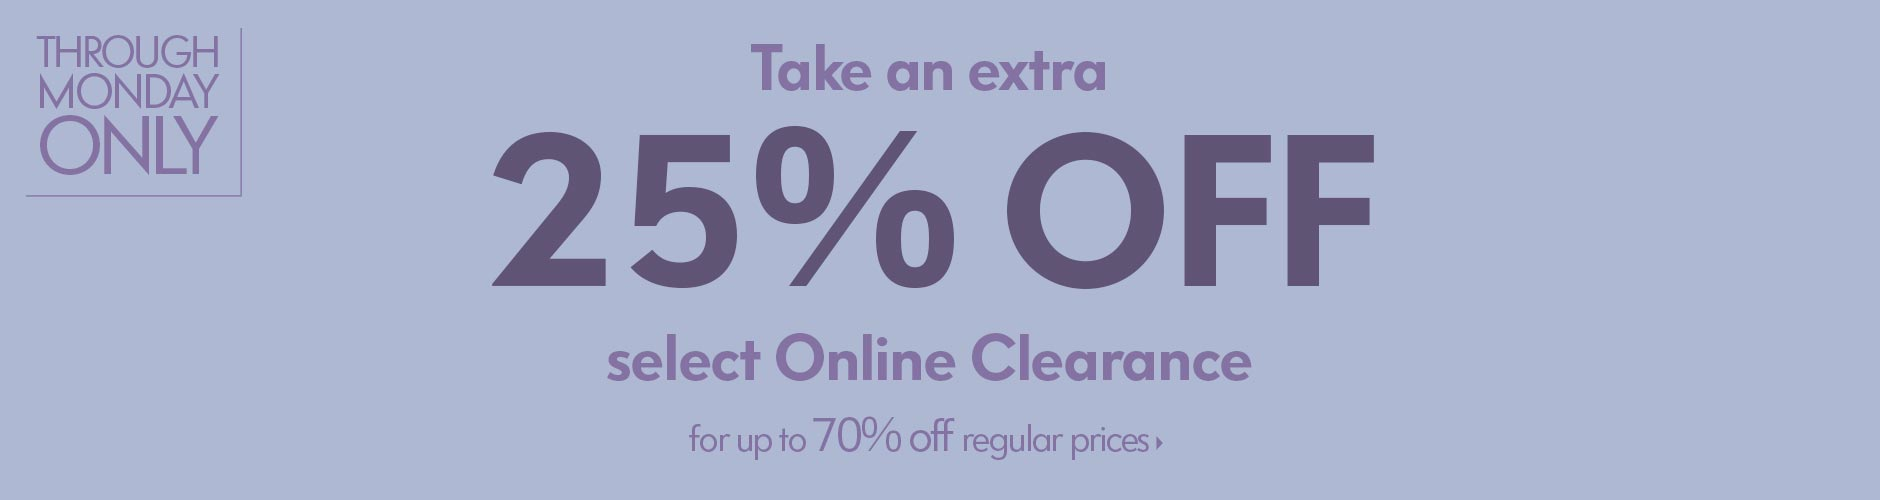 Extra 25% off Online Clearance